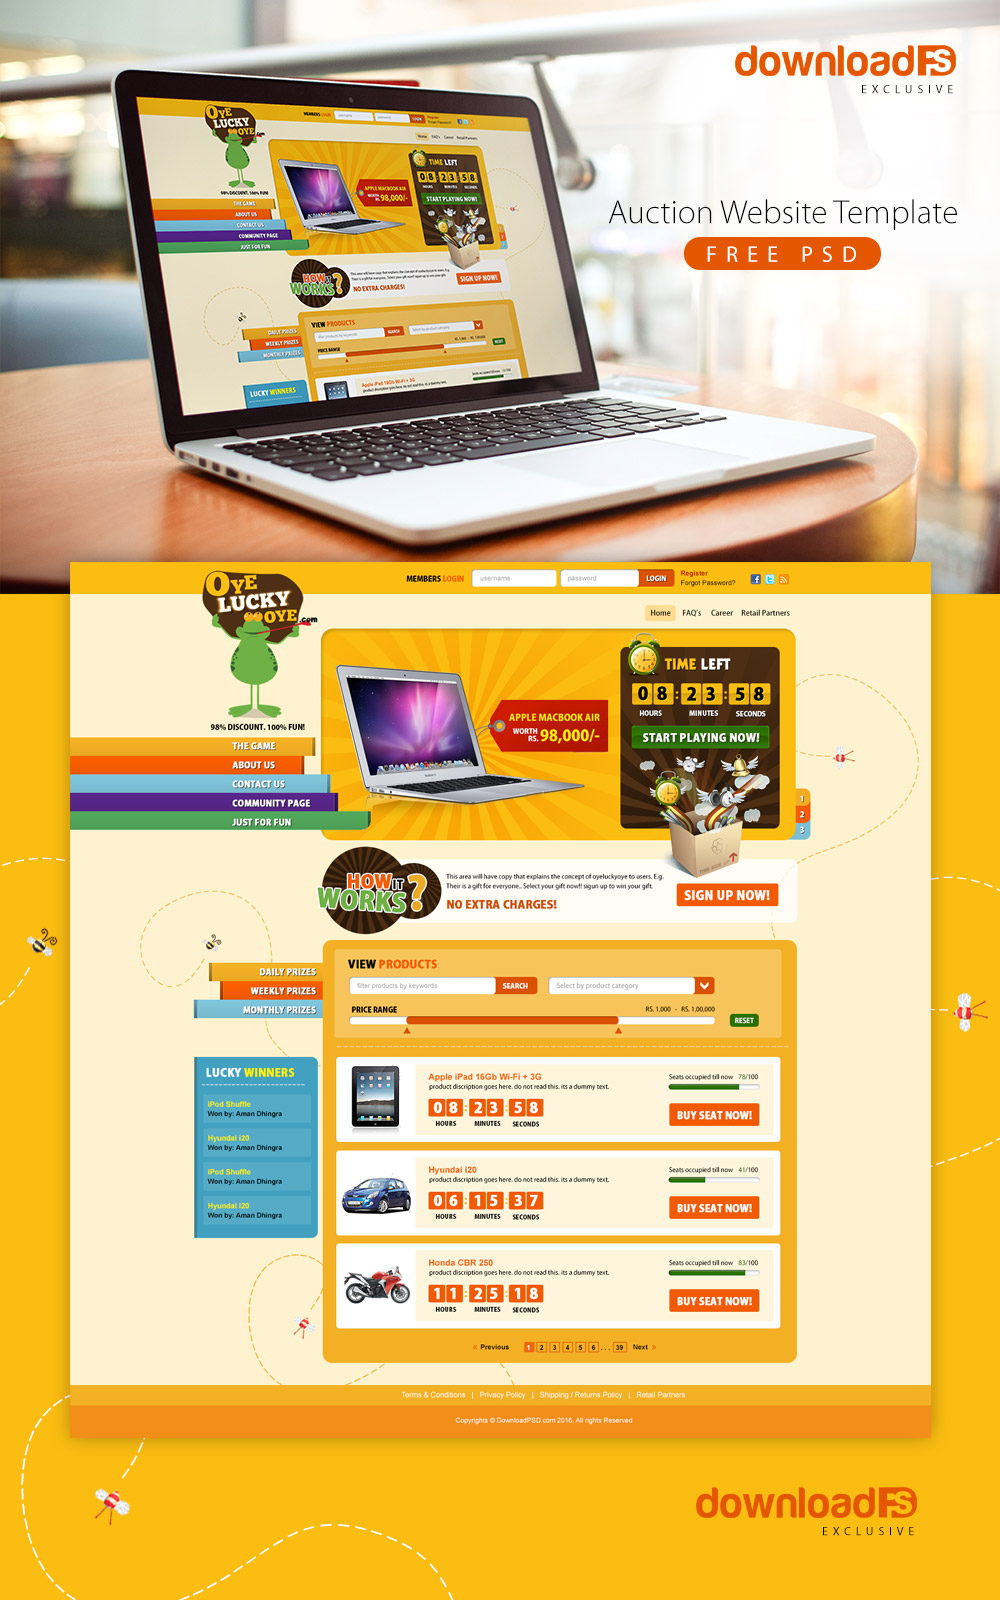 Auction Website Template Free PSD Download - Download PSD